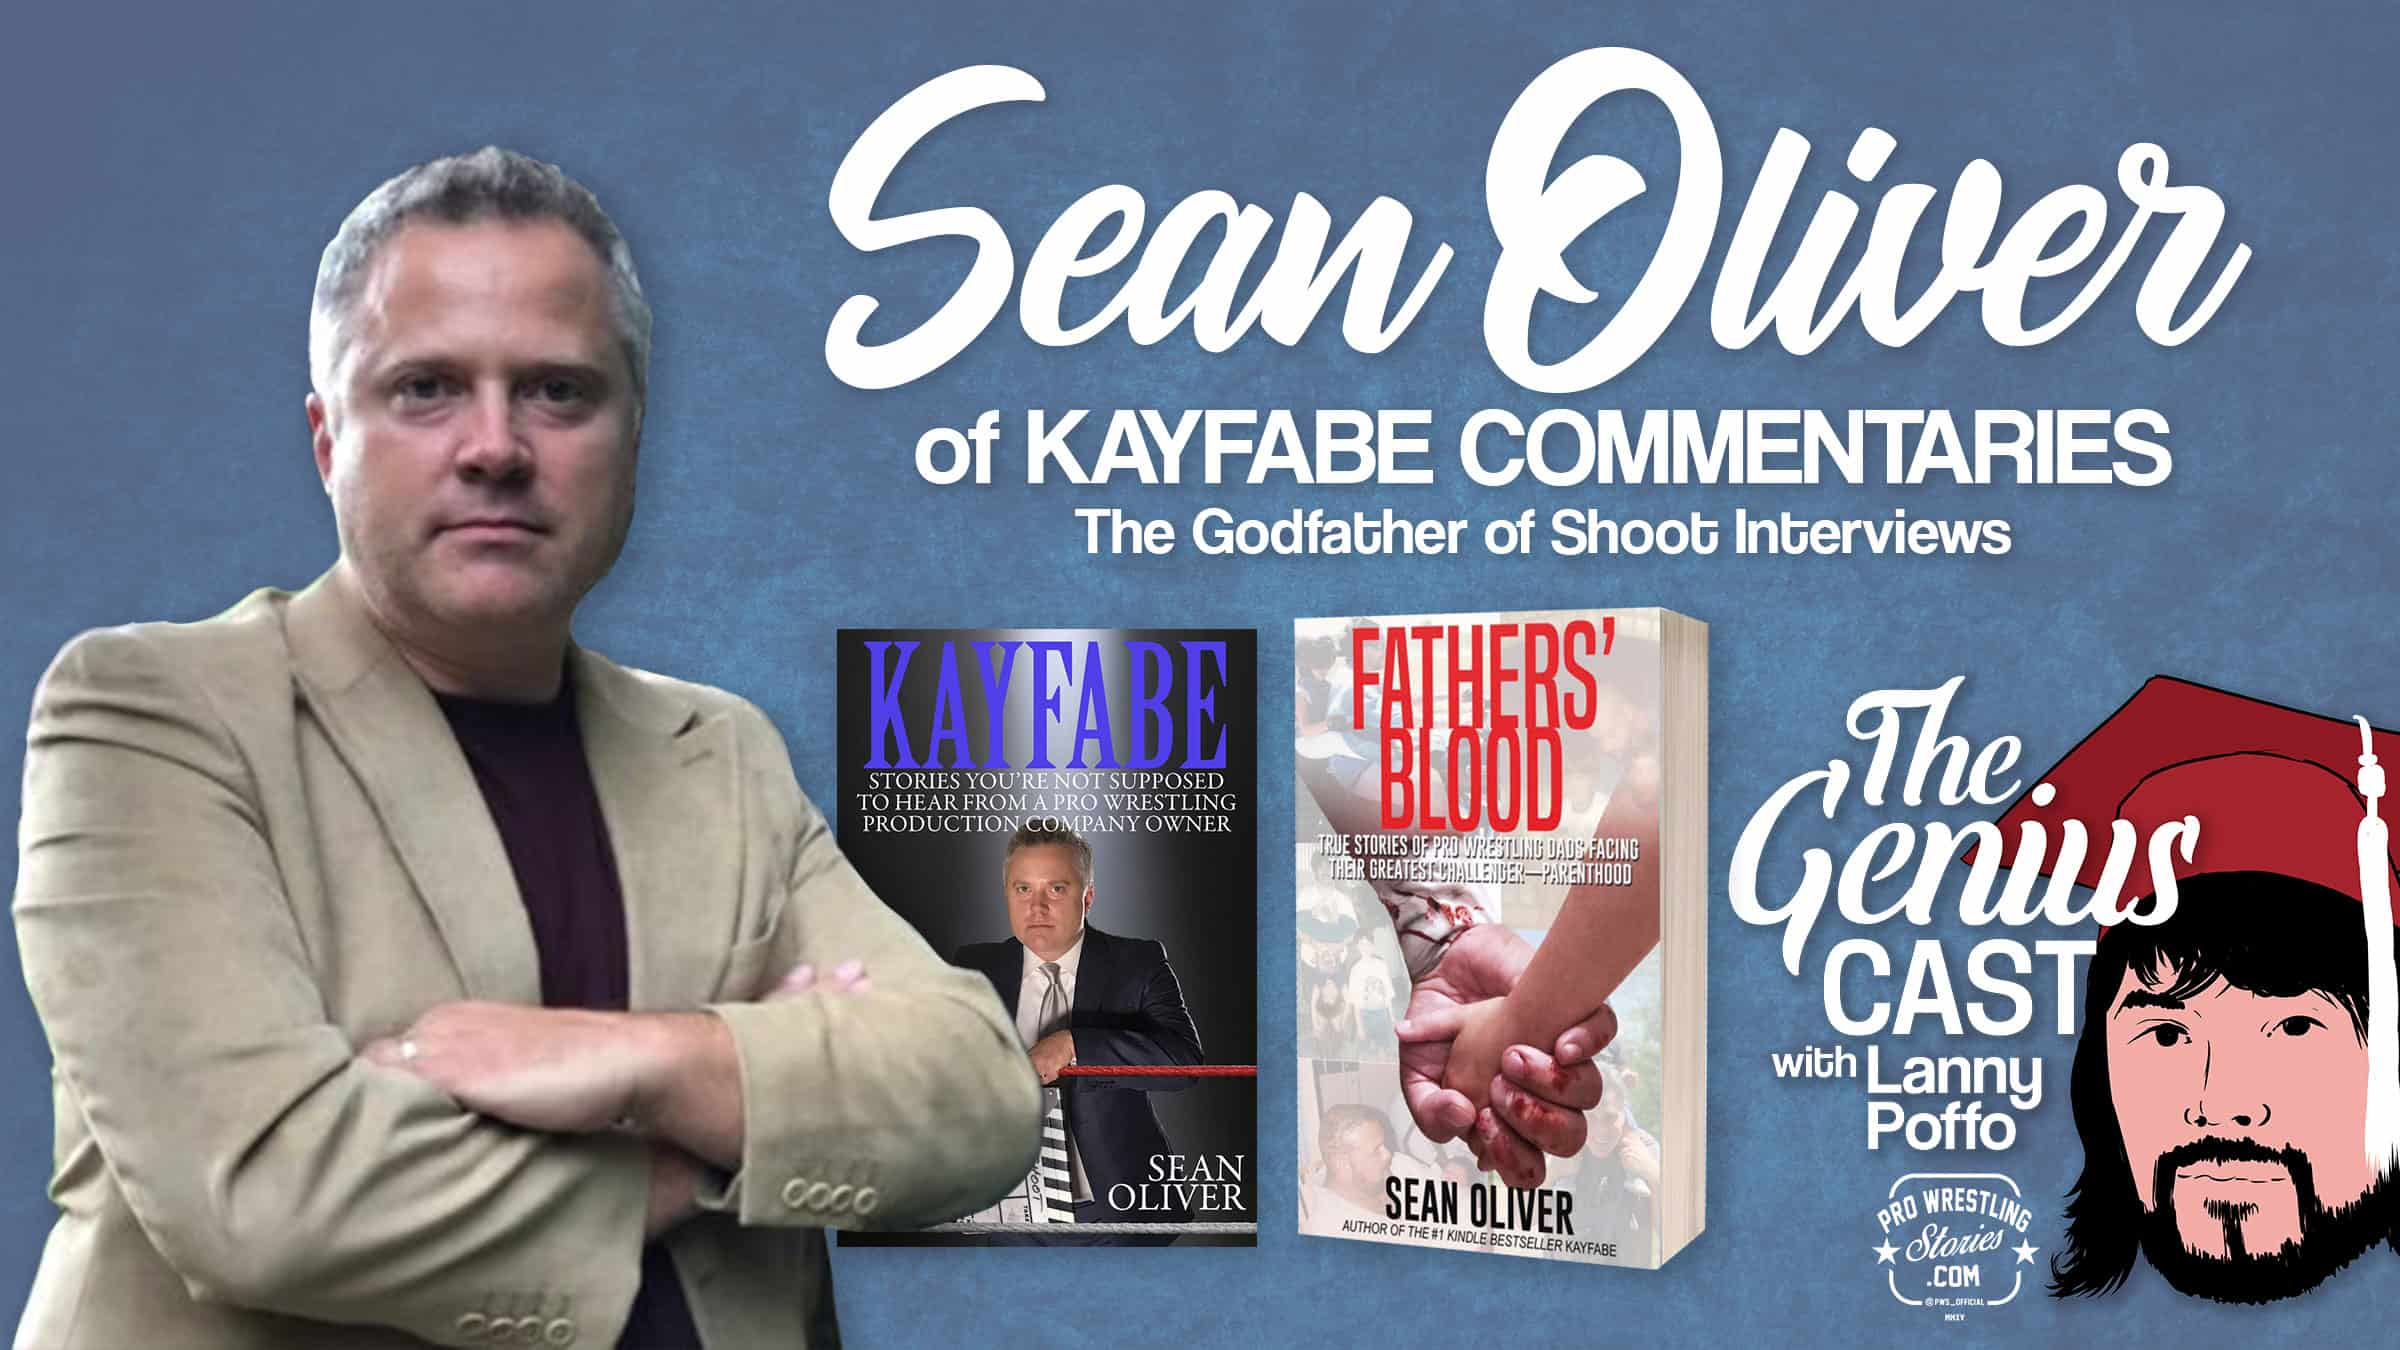 Sean Oliver of Kayfabe Commentaries - The Godfather of Shoot Interviews